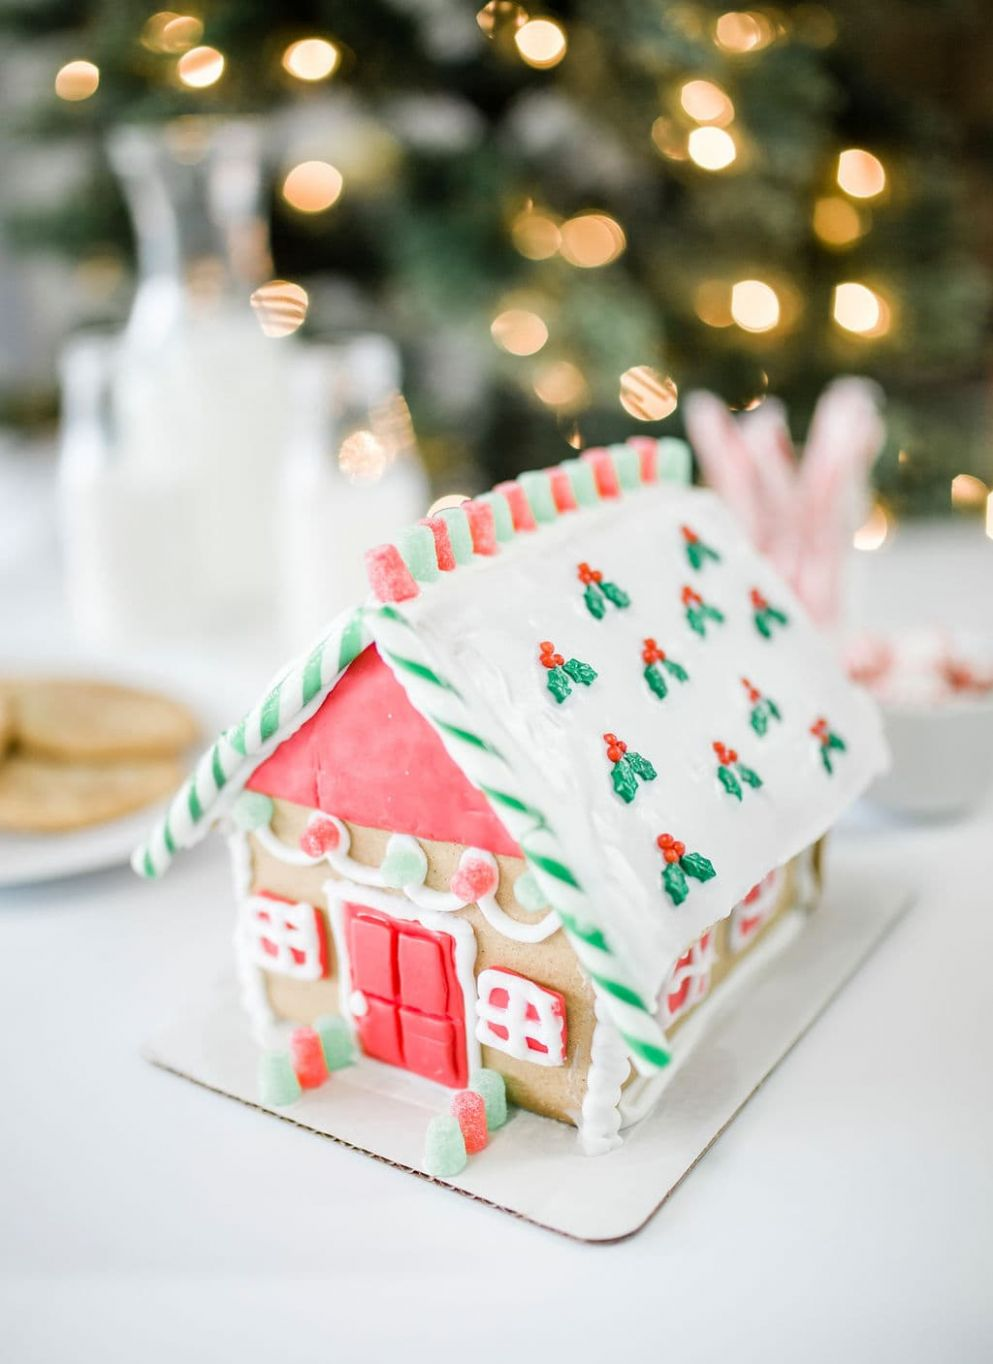 How to Decorate Gingerbead House